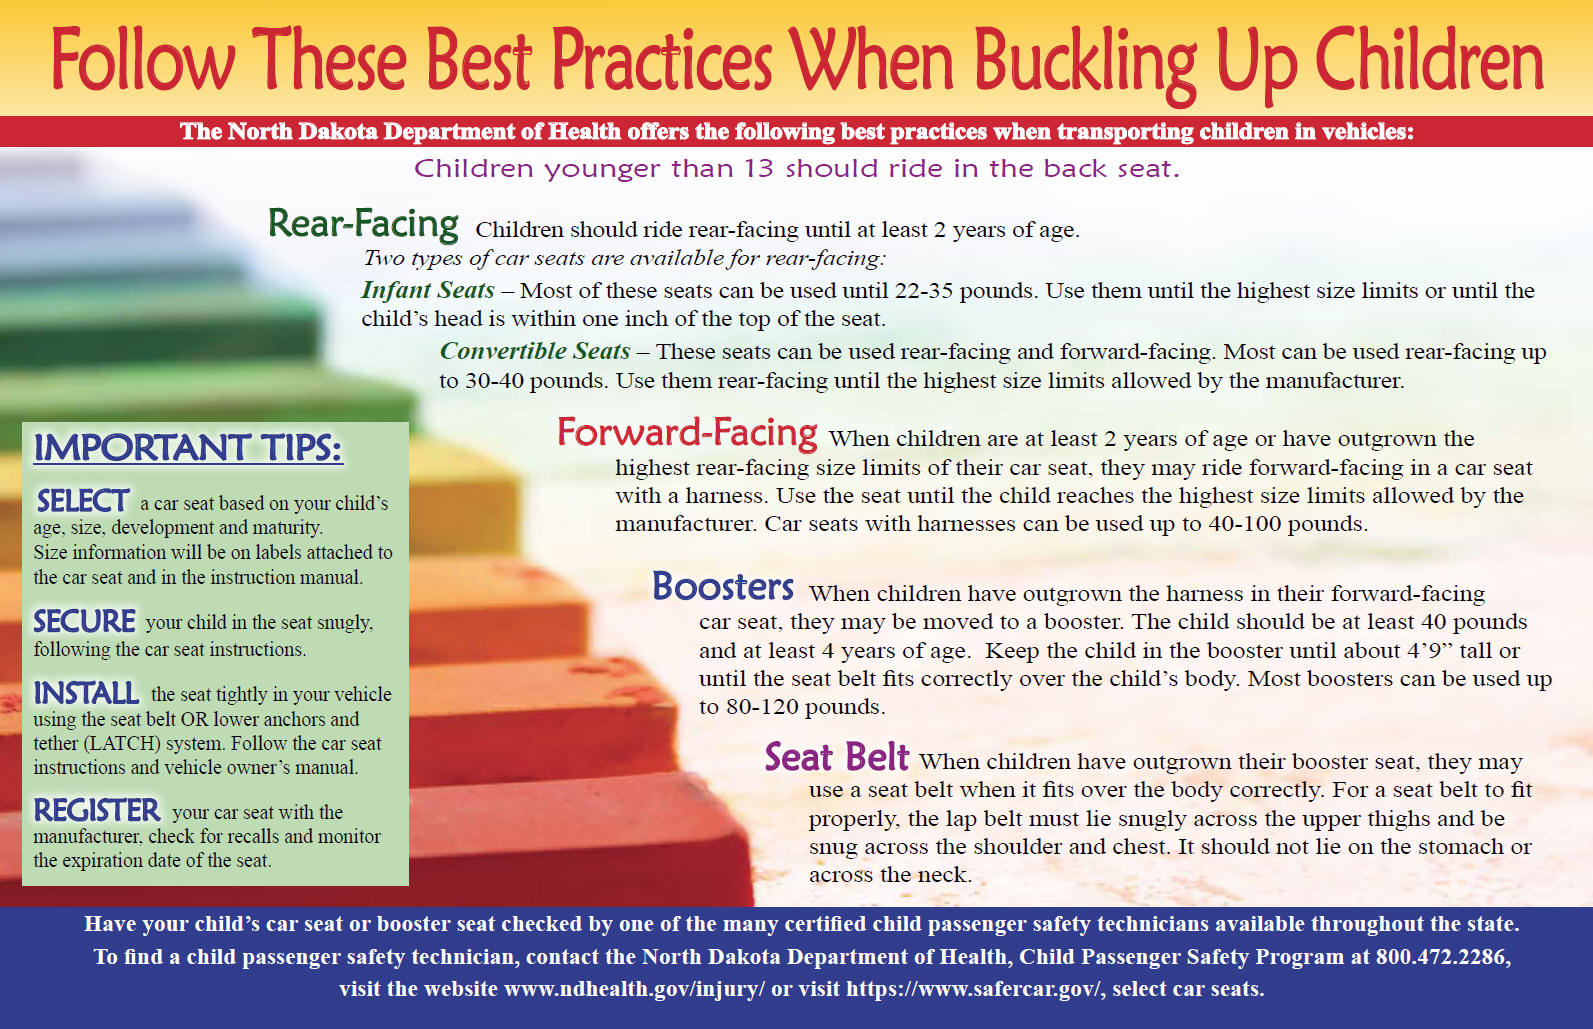 ND Child Passenger Safety Law And Best Practices Materials Poster 11x17